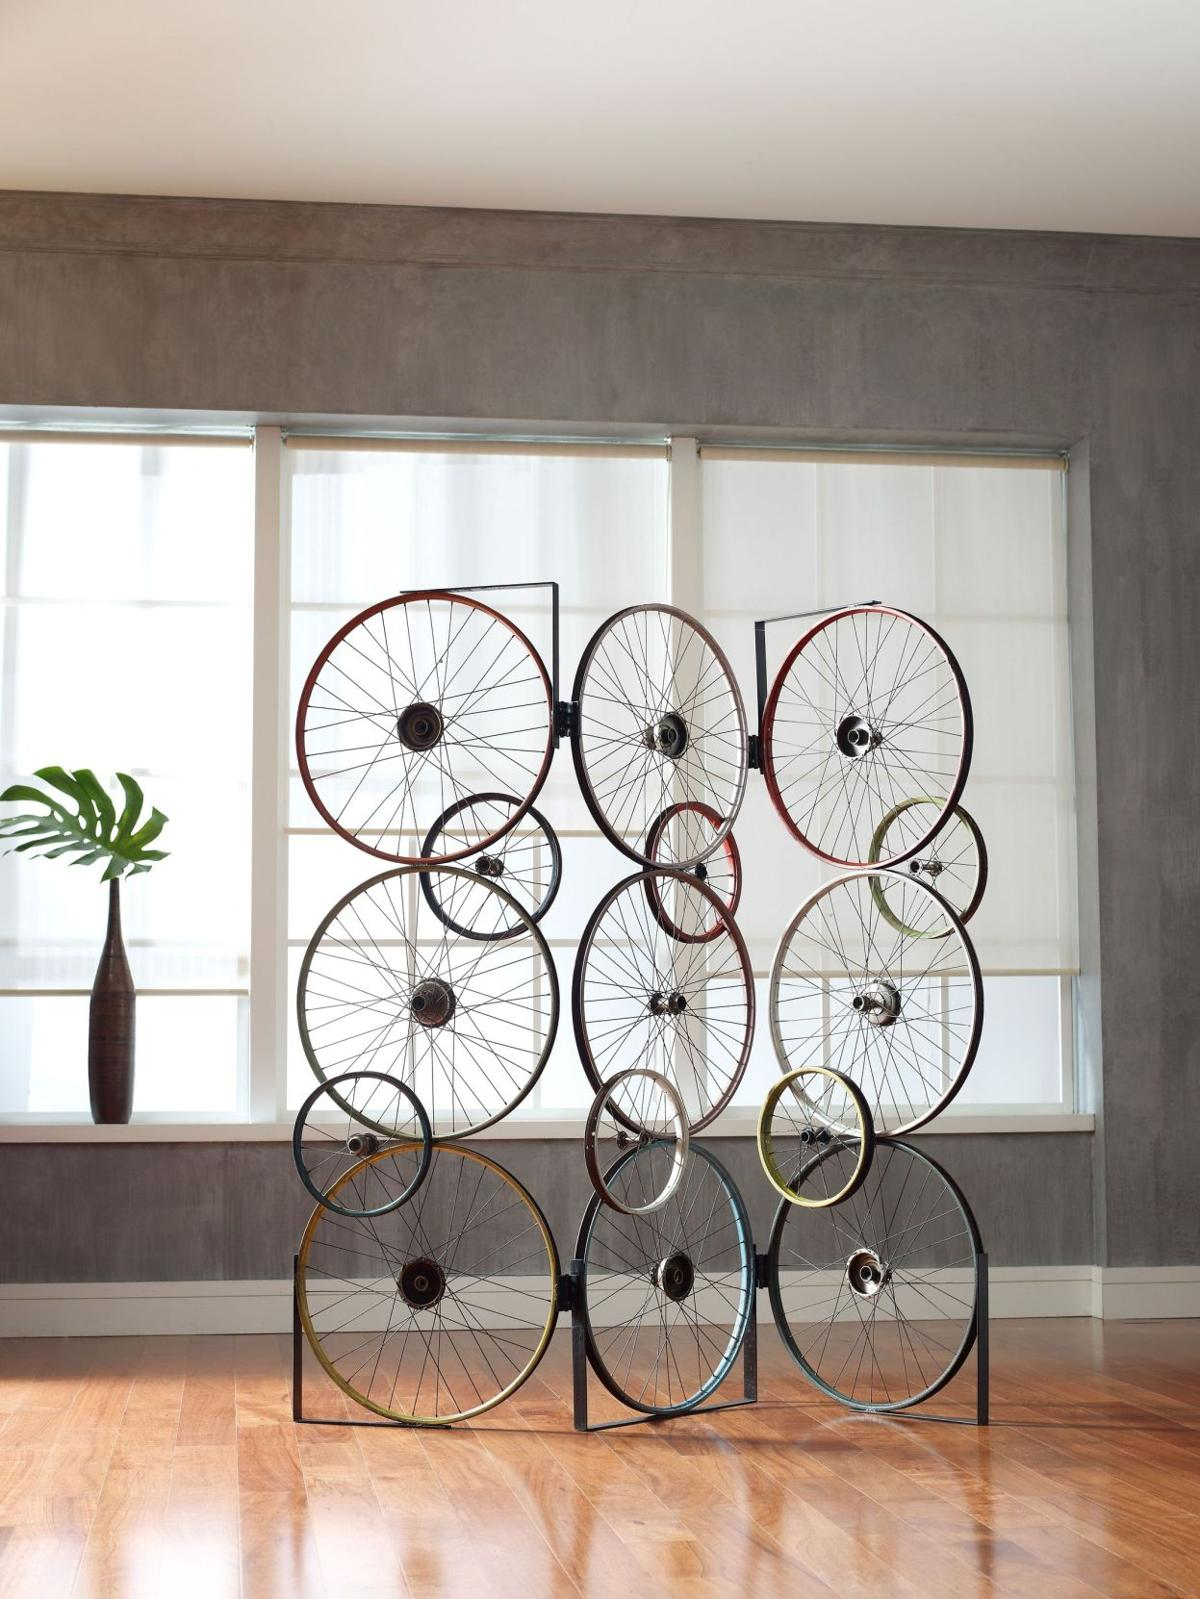 Recycling bicycle parts propels home decor